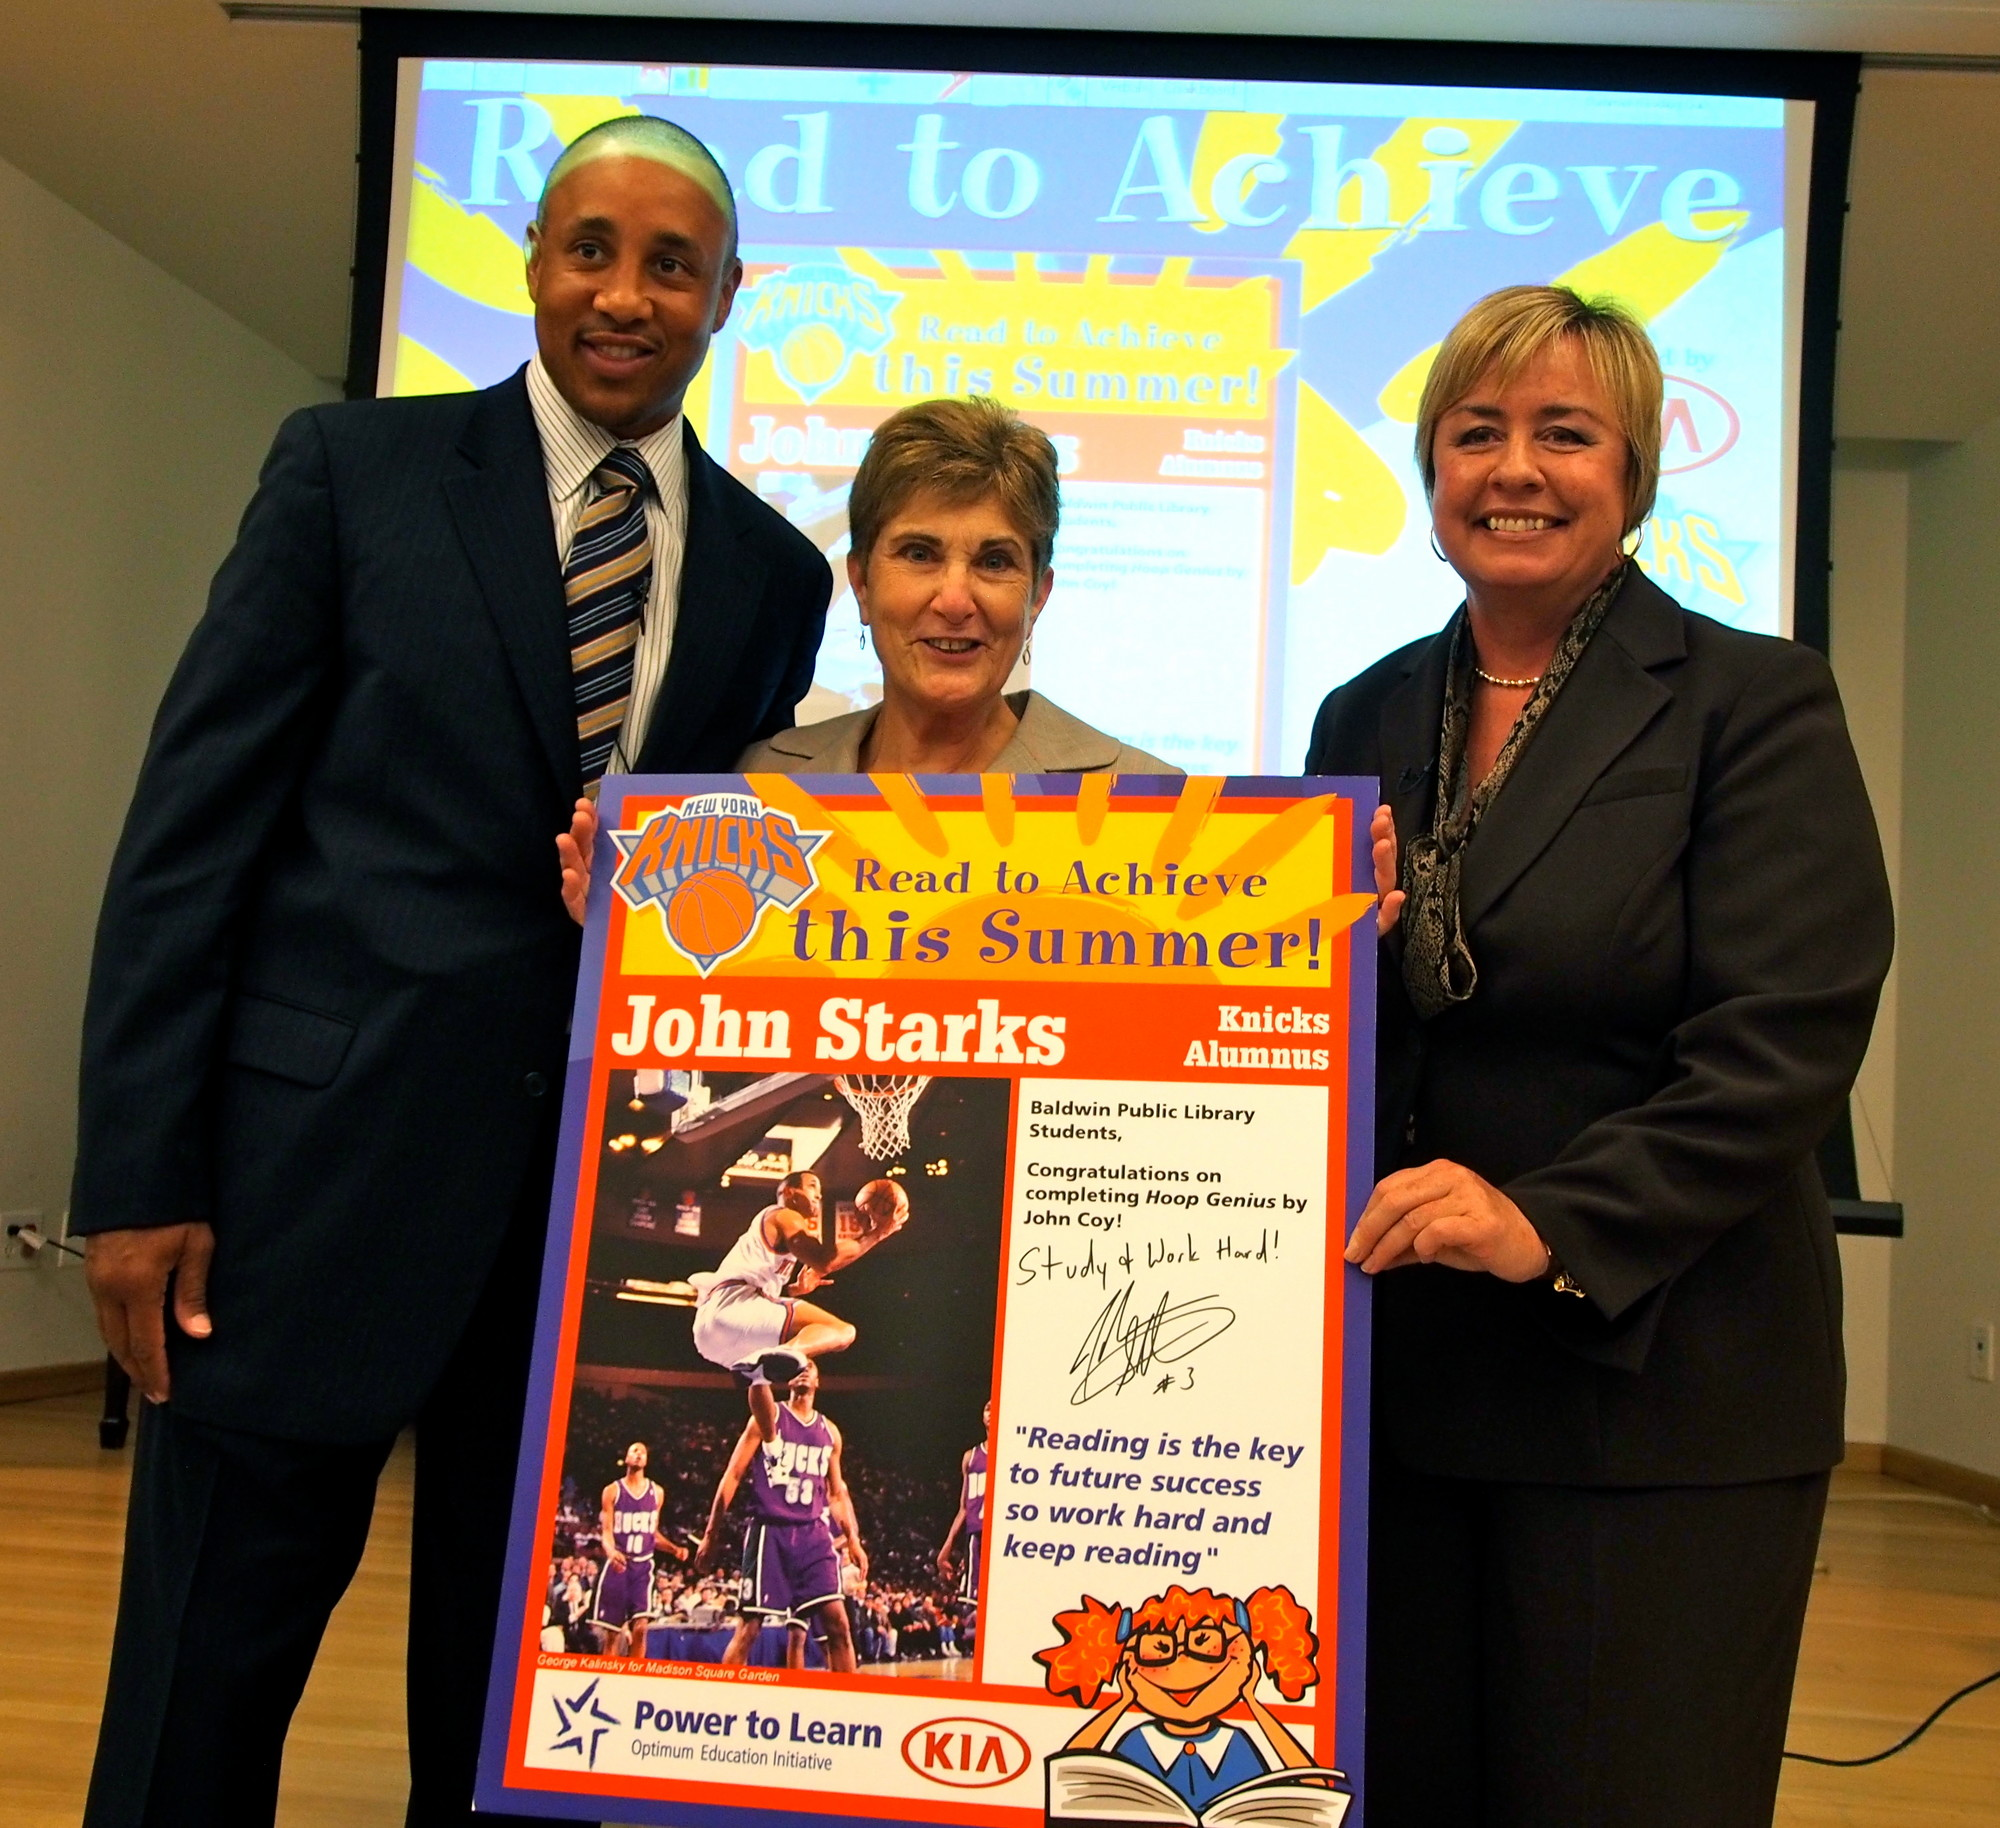 Starks joined Catherine Overton, director of the BPL, and Town of Hempstead Supervisor Kate Murray in promoting summer reading for kids last week.